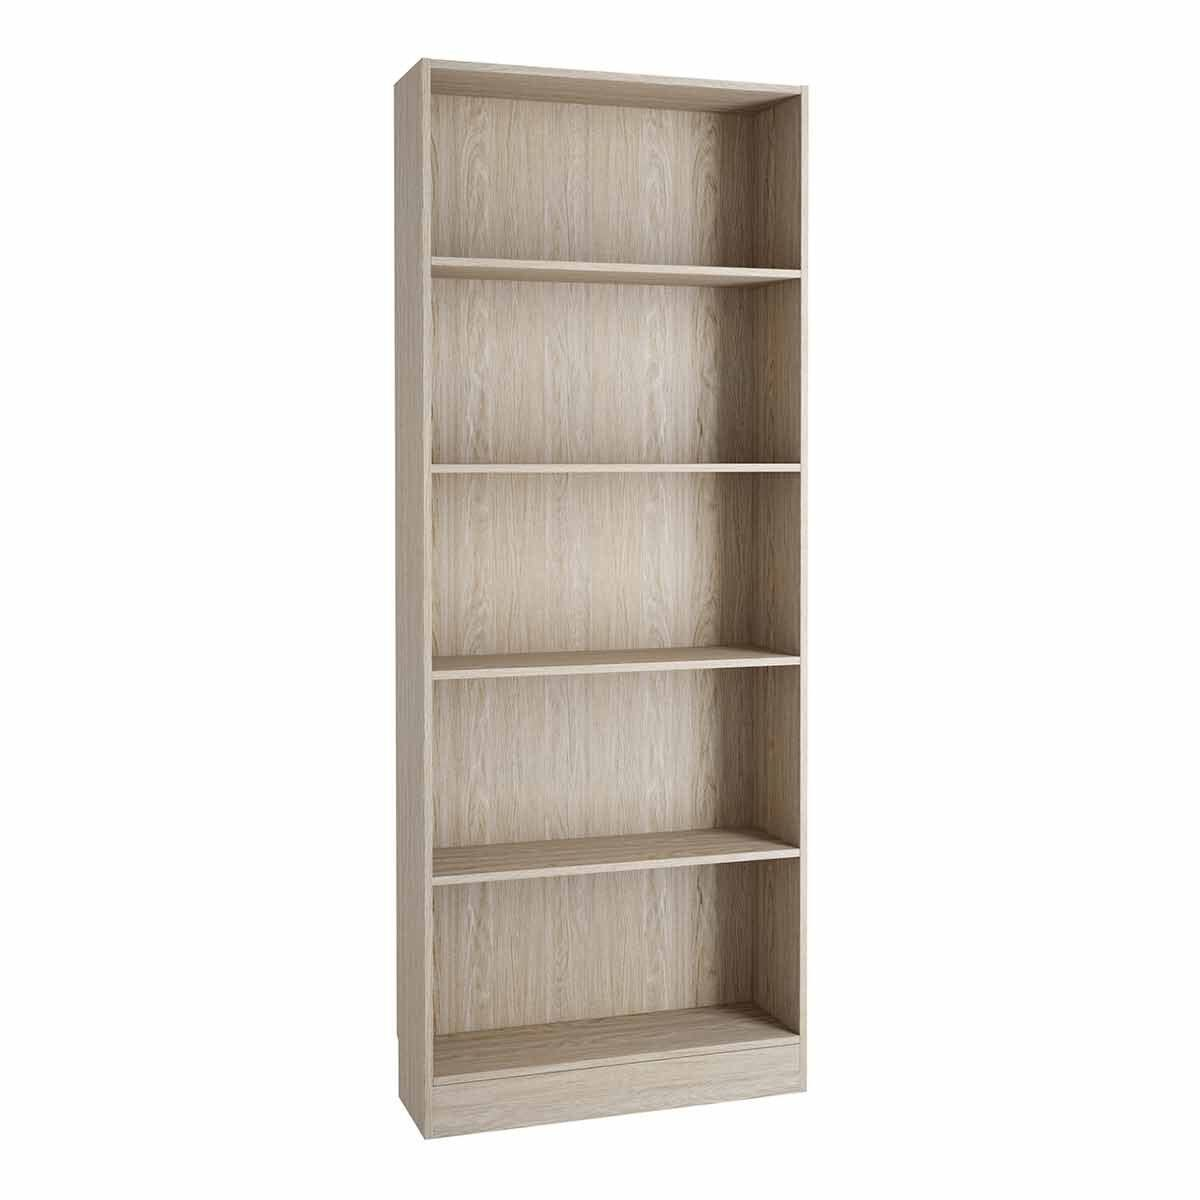 Basic Tall Wide Bookcase with 4 Shelves Oak